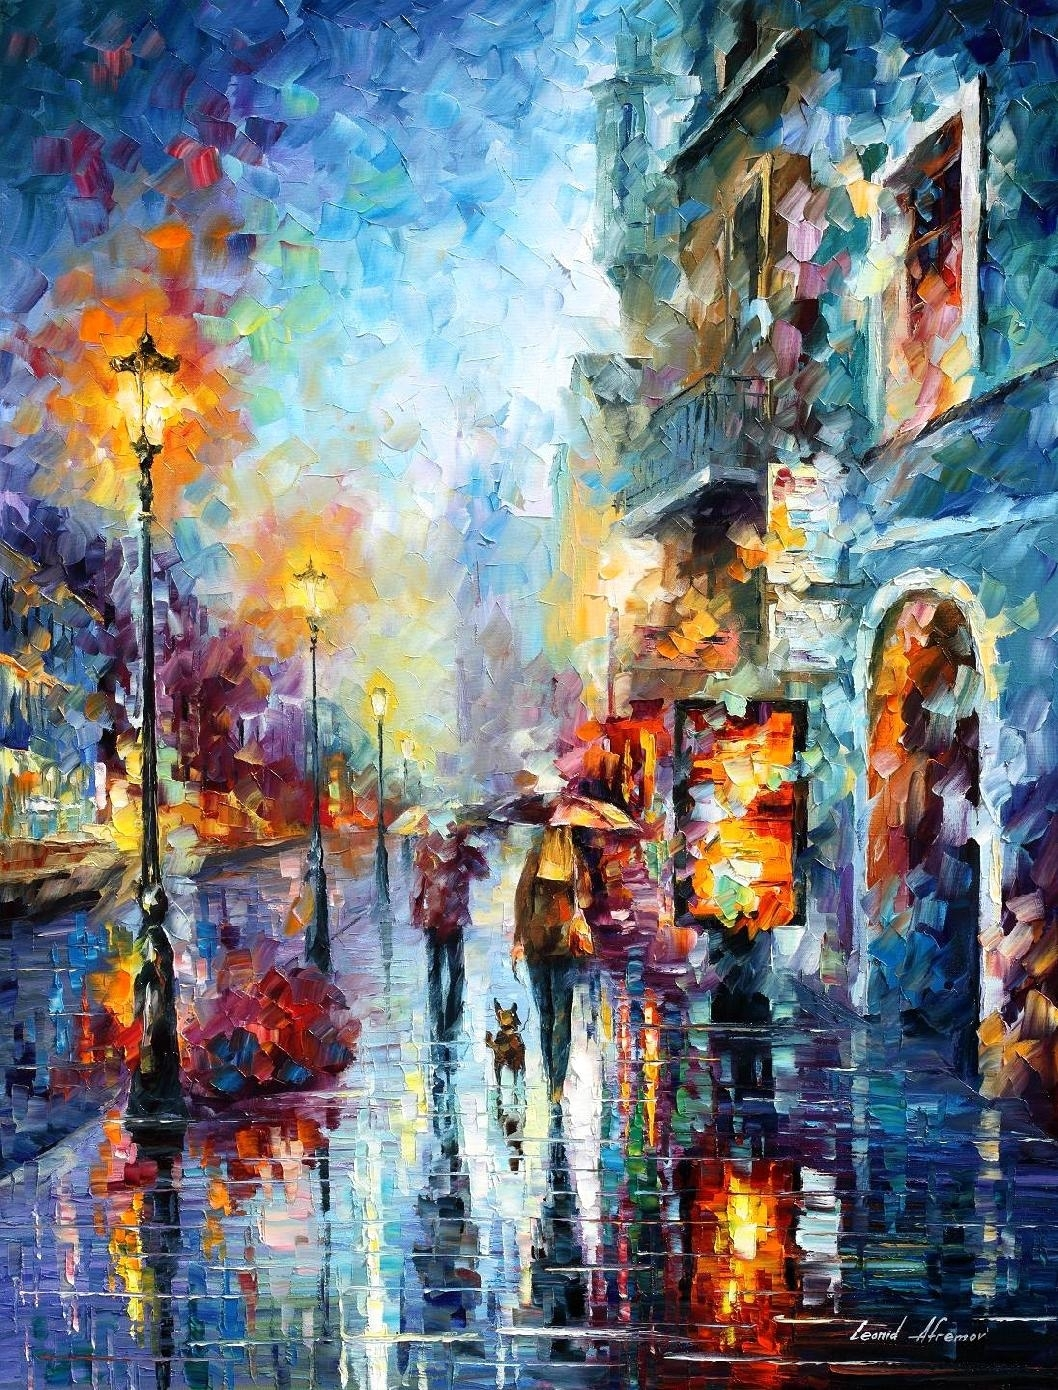 Abstract Wall Artfamous Painter Leonid Afremov For Your Room Within Most Recent Happiness Abstract Wall Art (View 17 of 20)